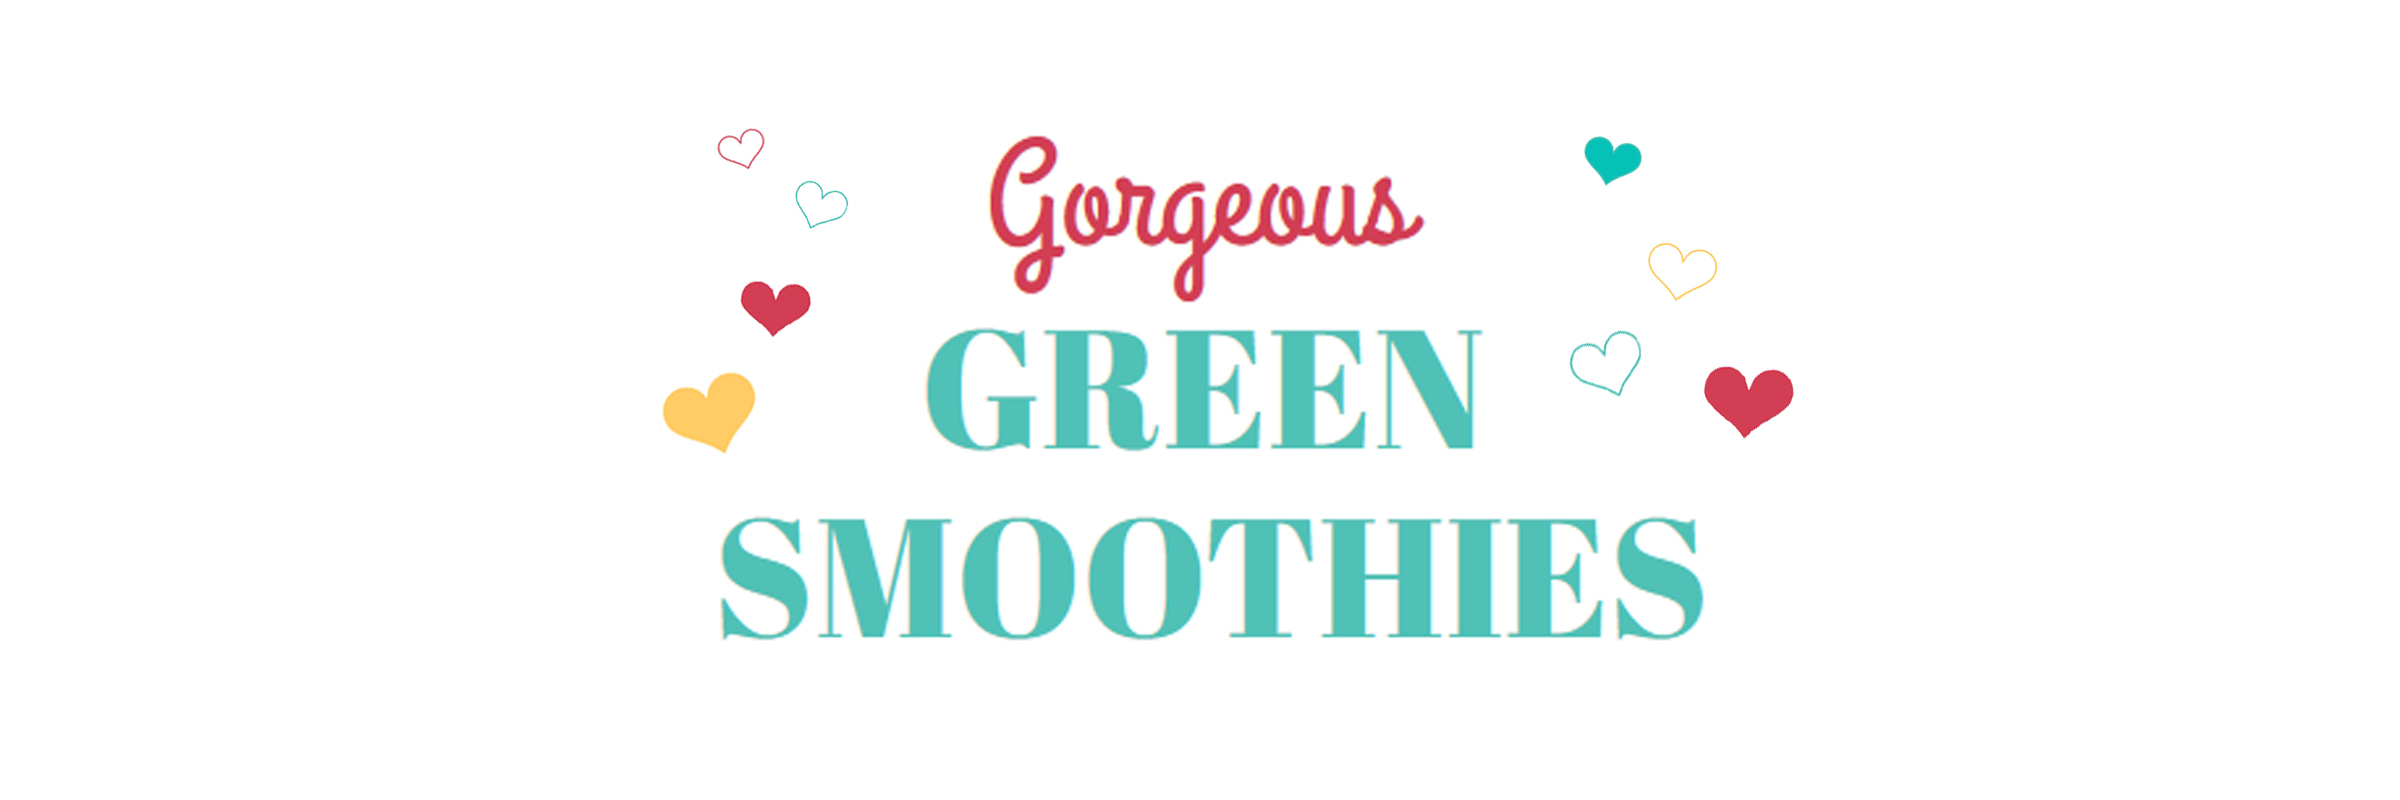 Gorgeous Green Smoothies